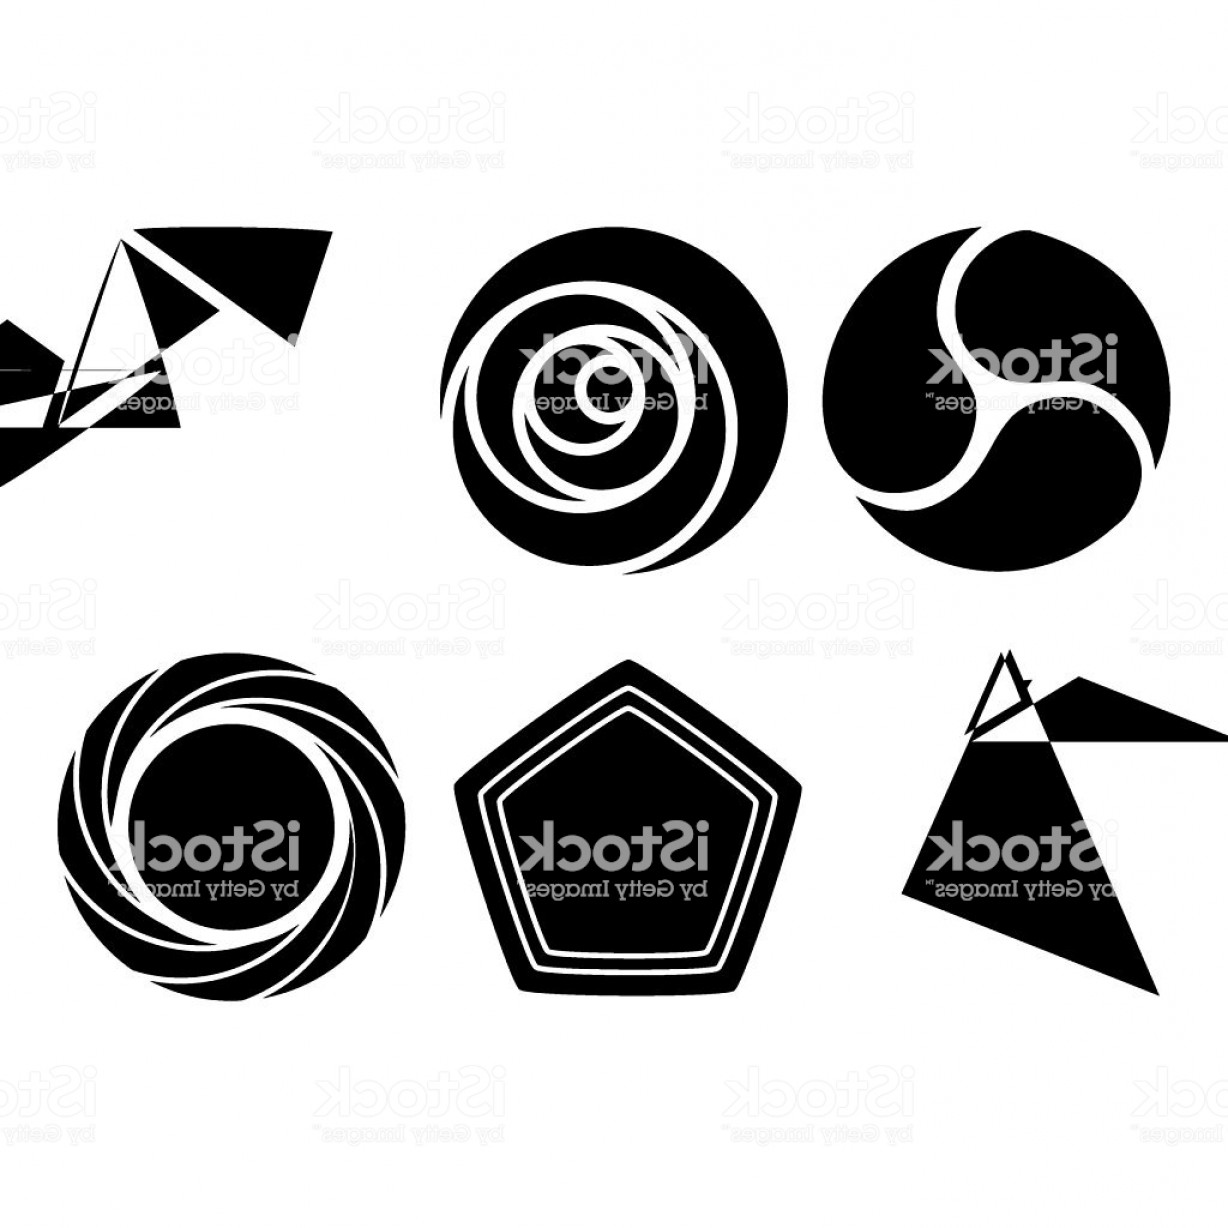 Sign Shapes Vector Art: Round And Triangular Geometric Shapes Vector Set For Signs Gm